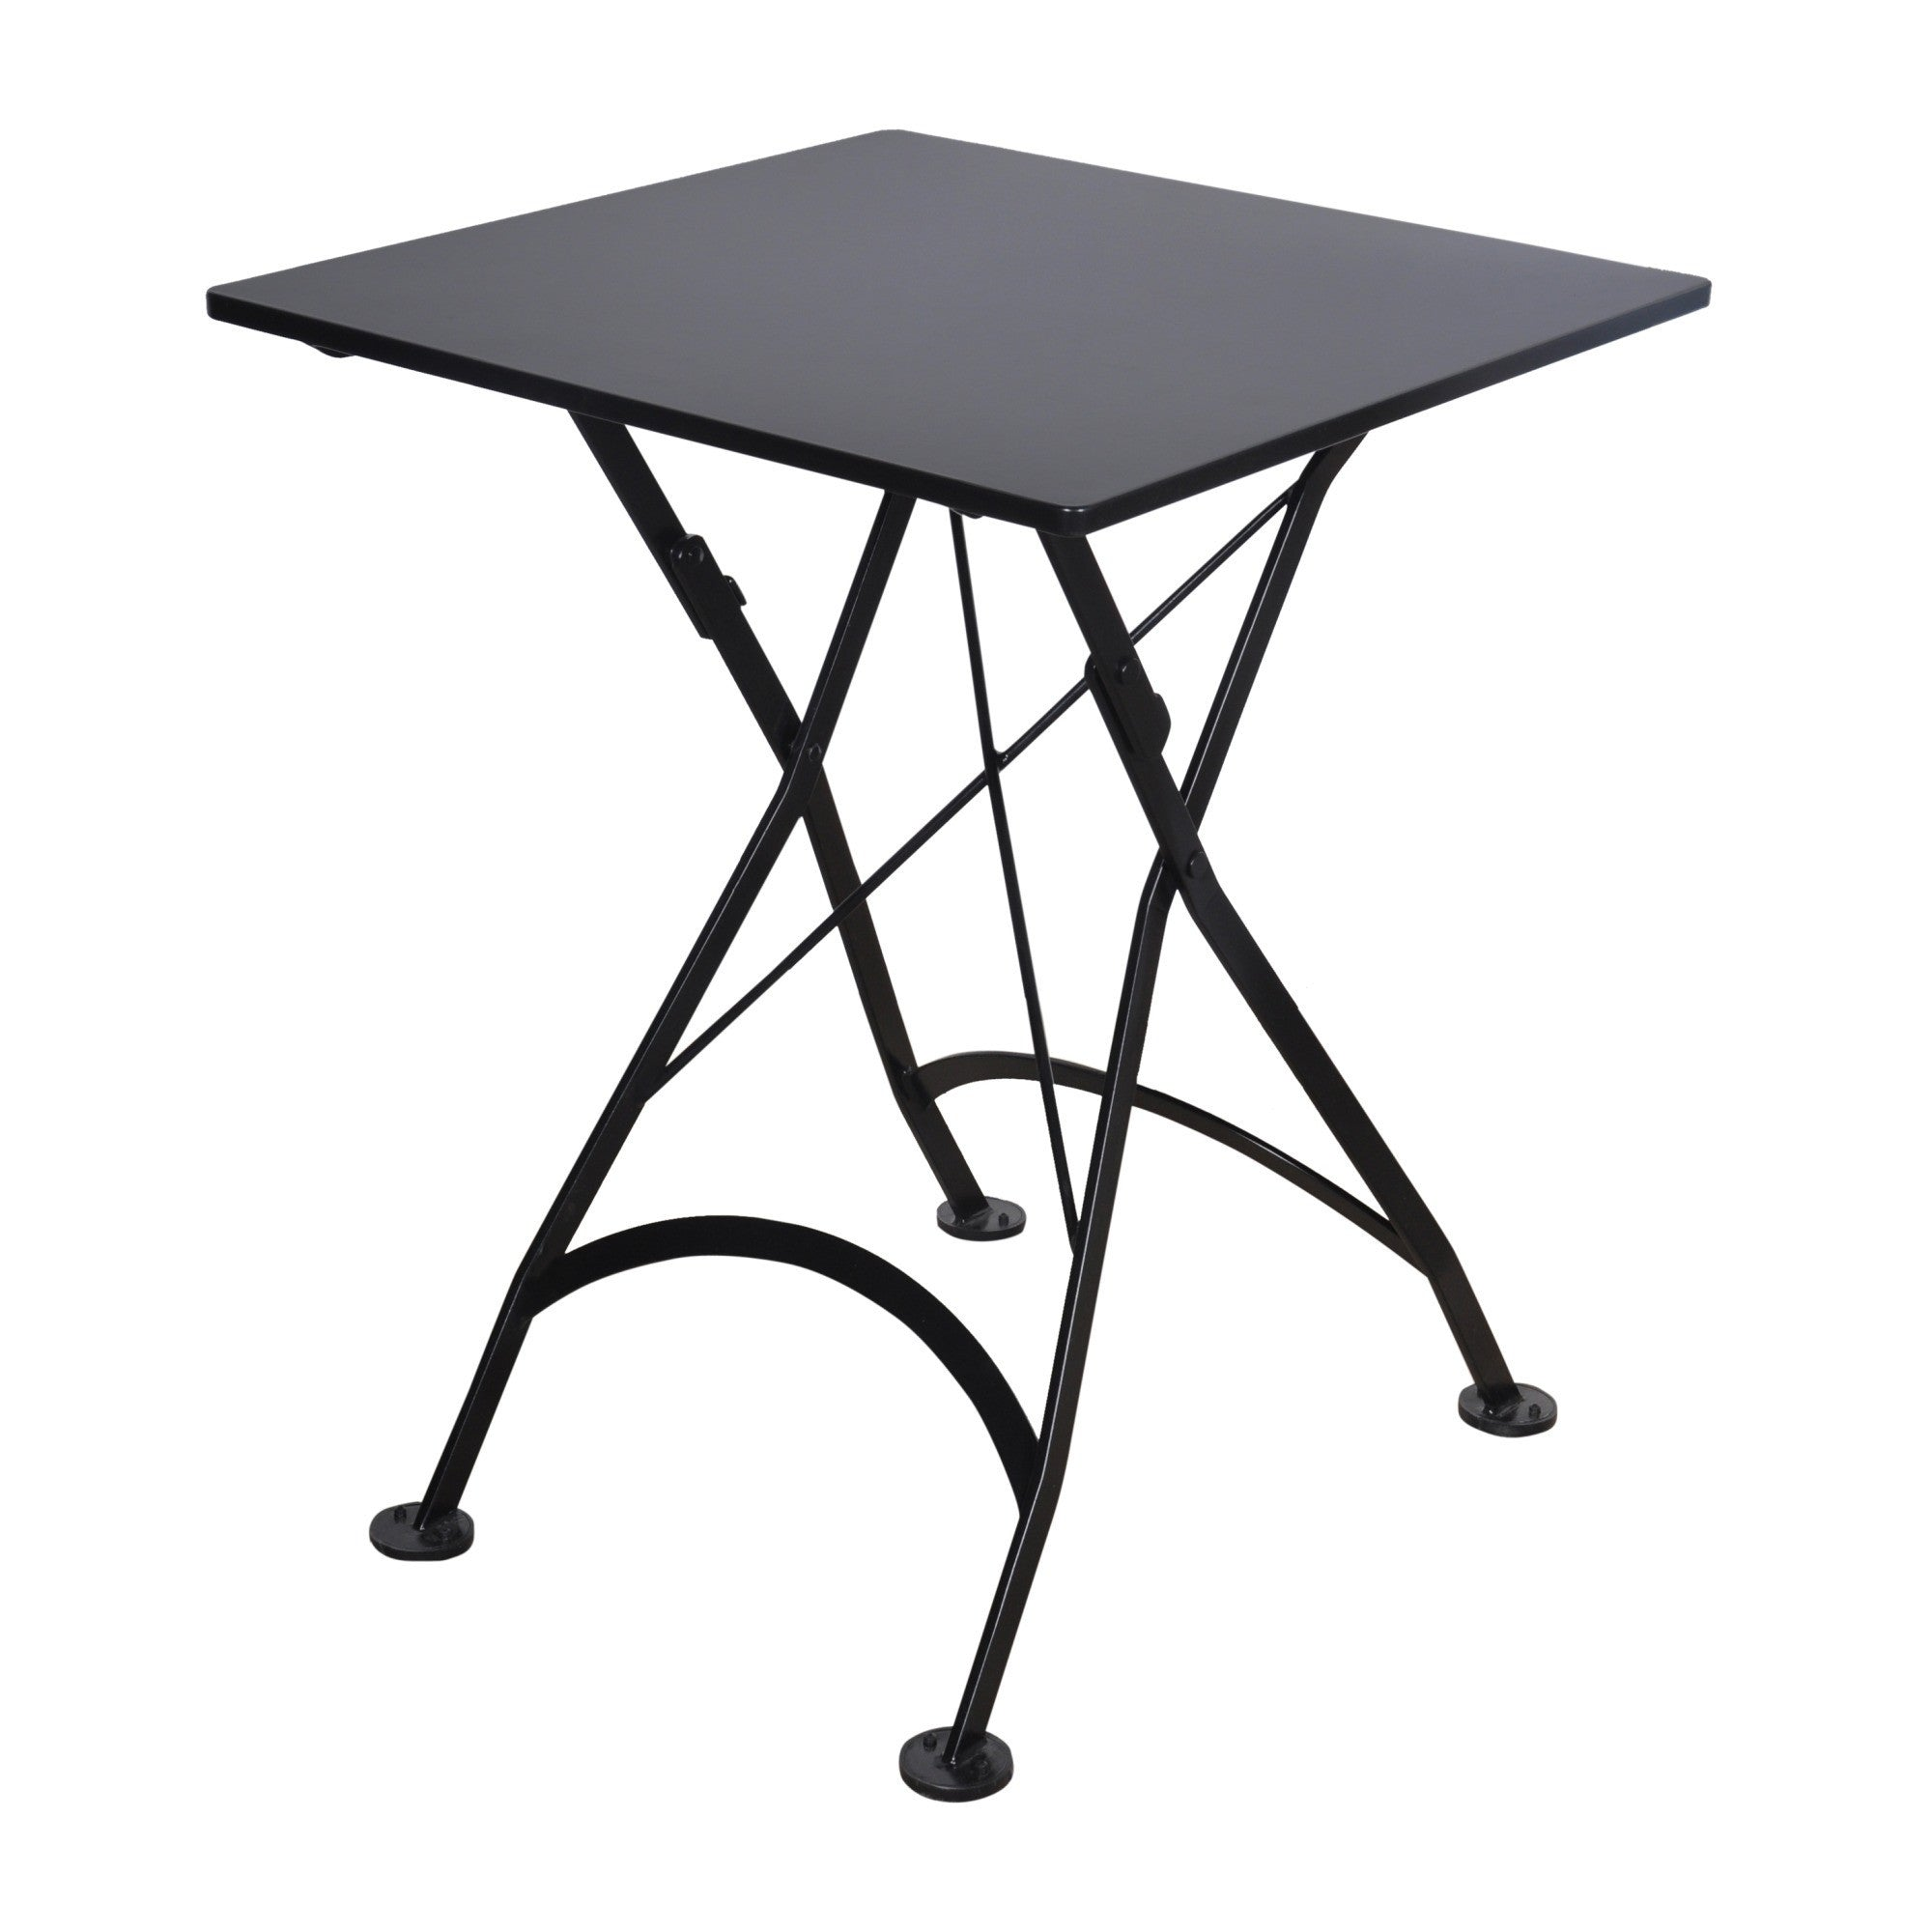 Square folding tables - 24 Inch Square European Folding Steel Metal Bistro Table